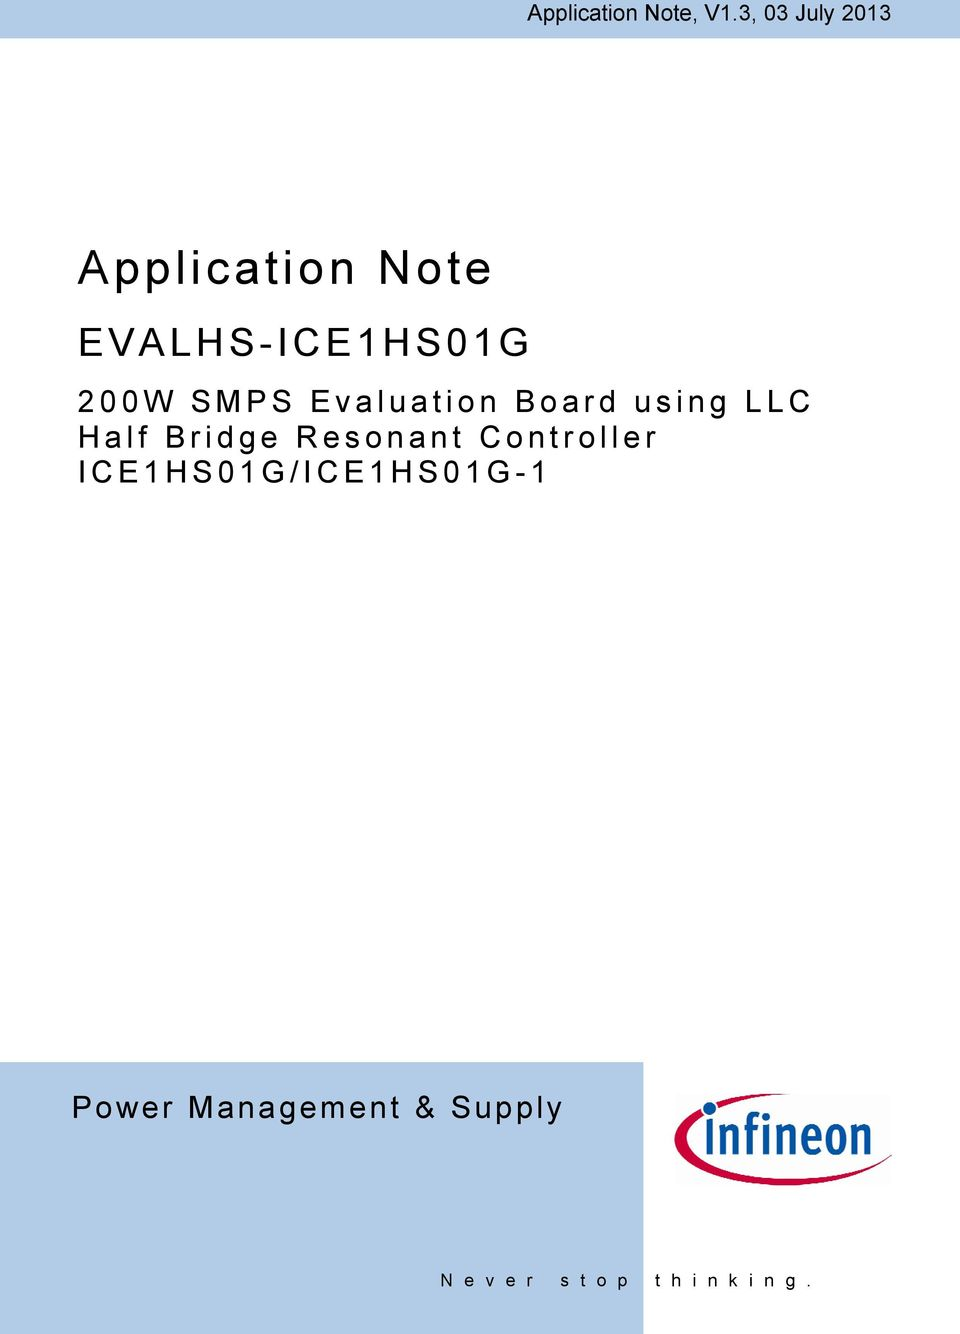 Application Note EVALHS-ICE1HS01G  200W SMPS Evaluation